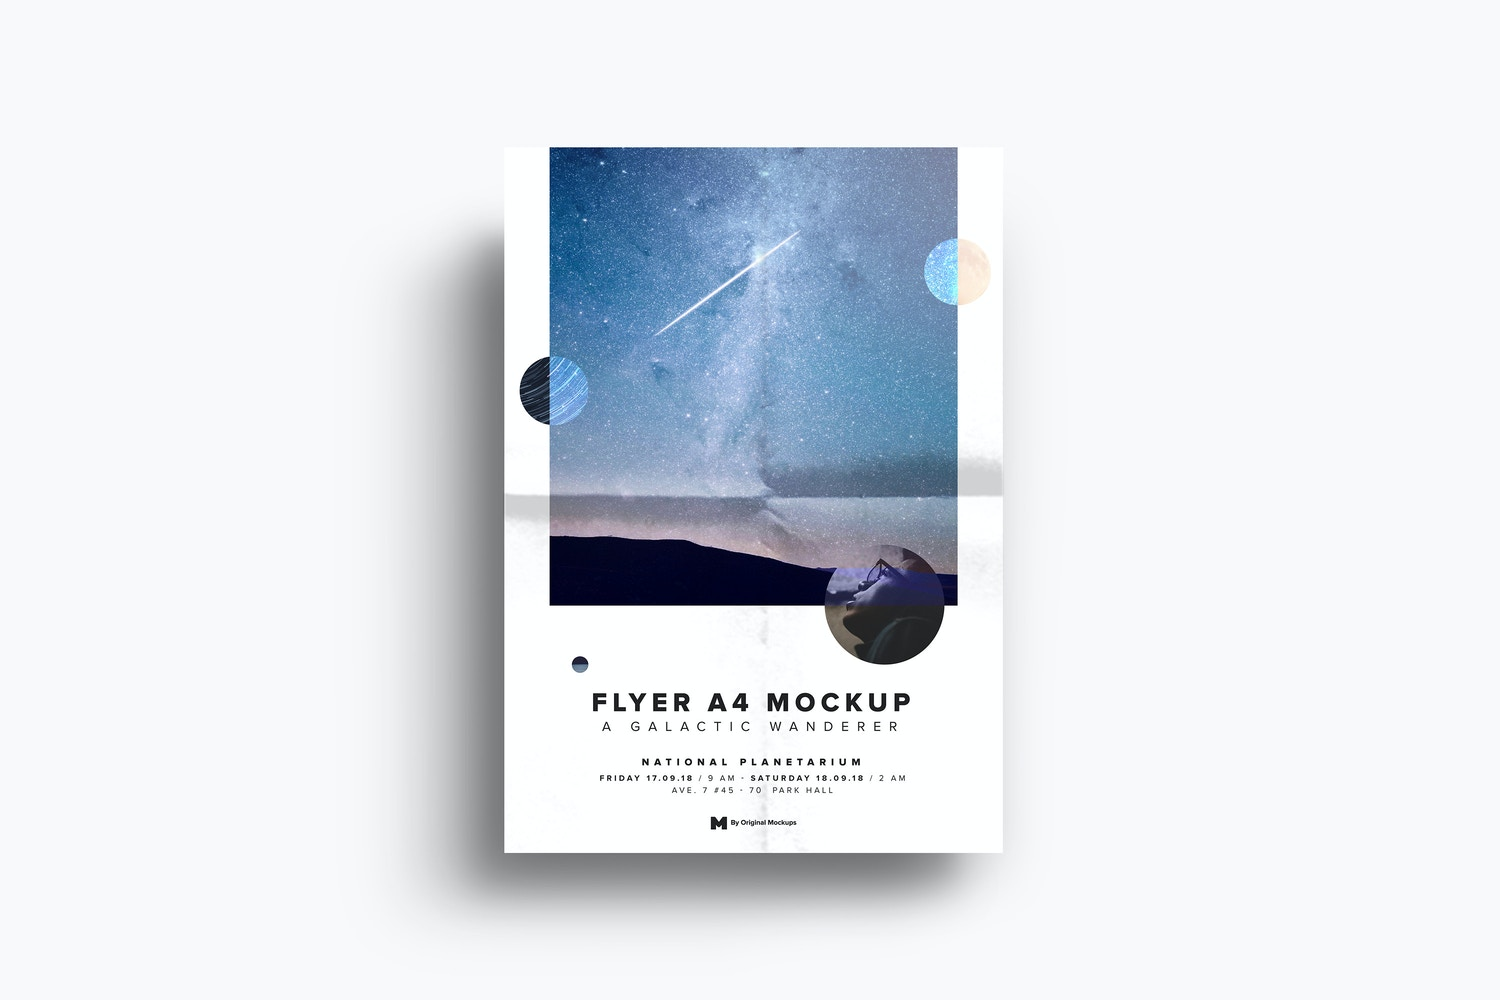 A4-A5 Flyer Mockup 02 by Original Mockups on Original Mockups